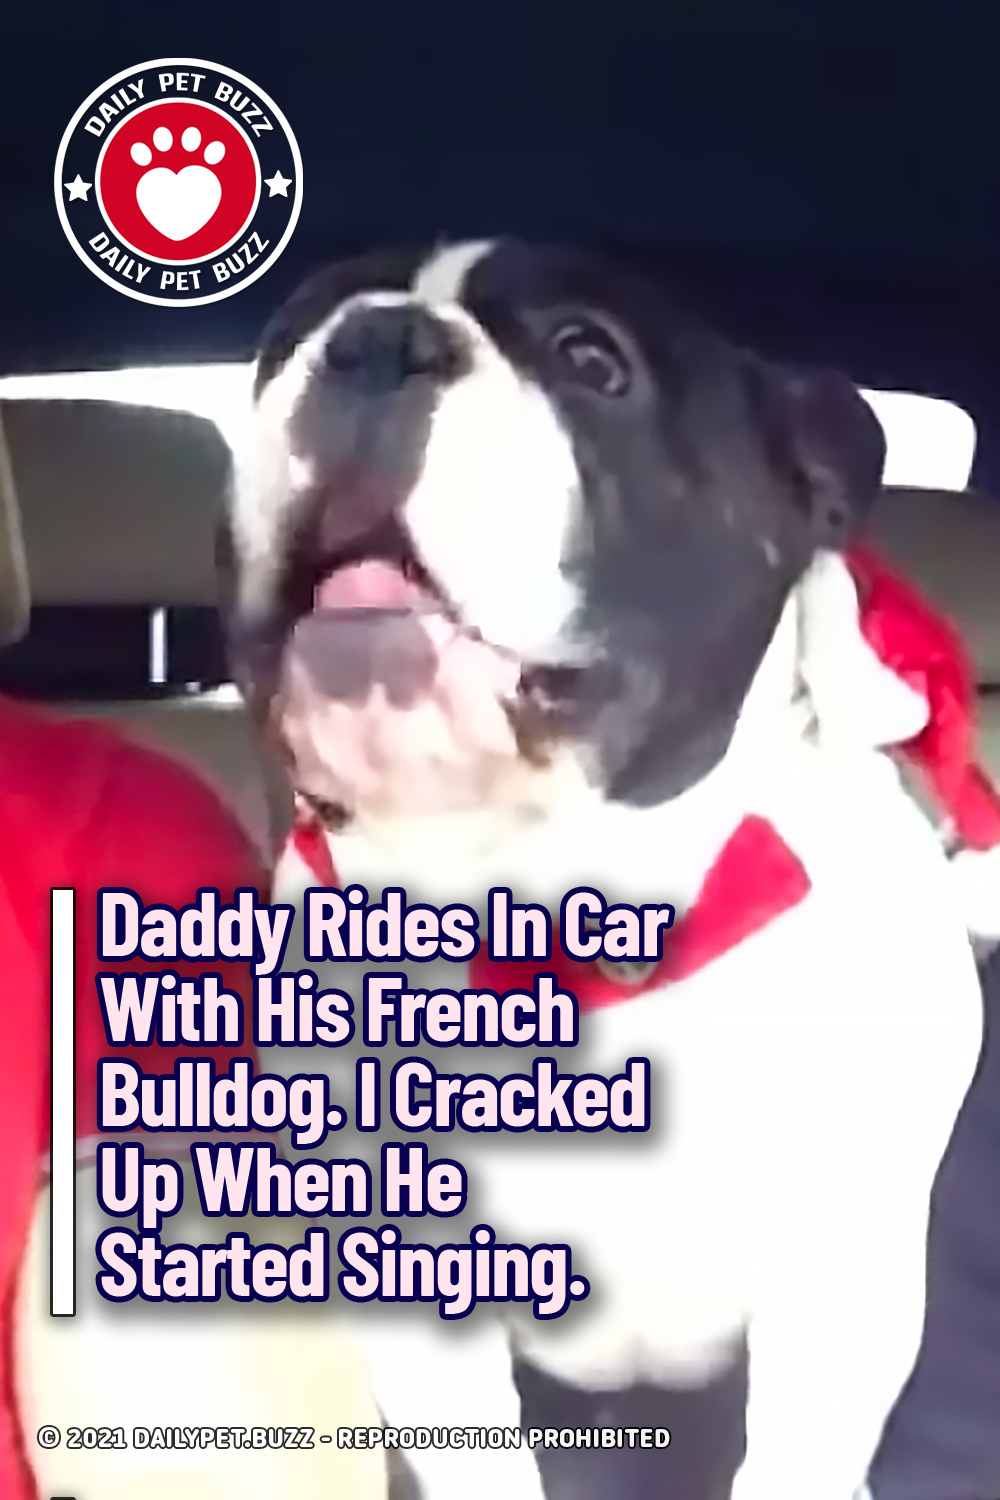 Daddy Rides In Car With His French Bulldog. I Cracked Up When He Started Singing.